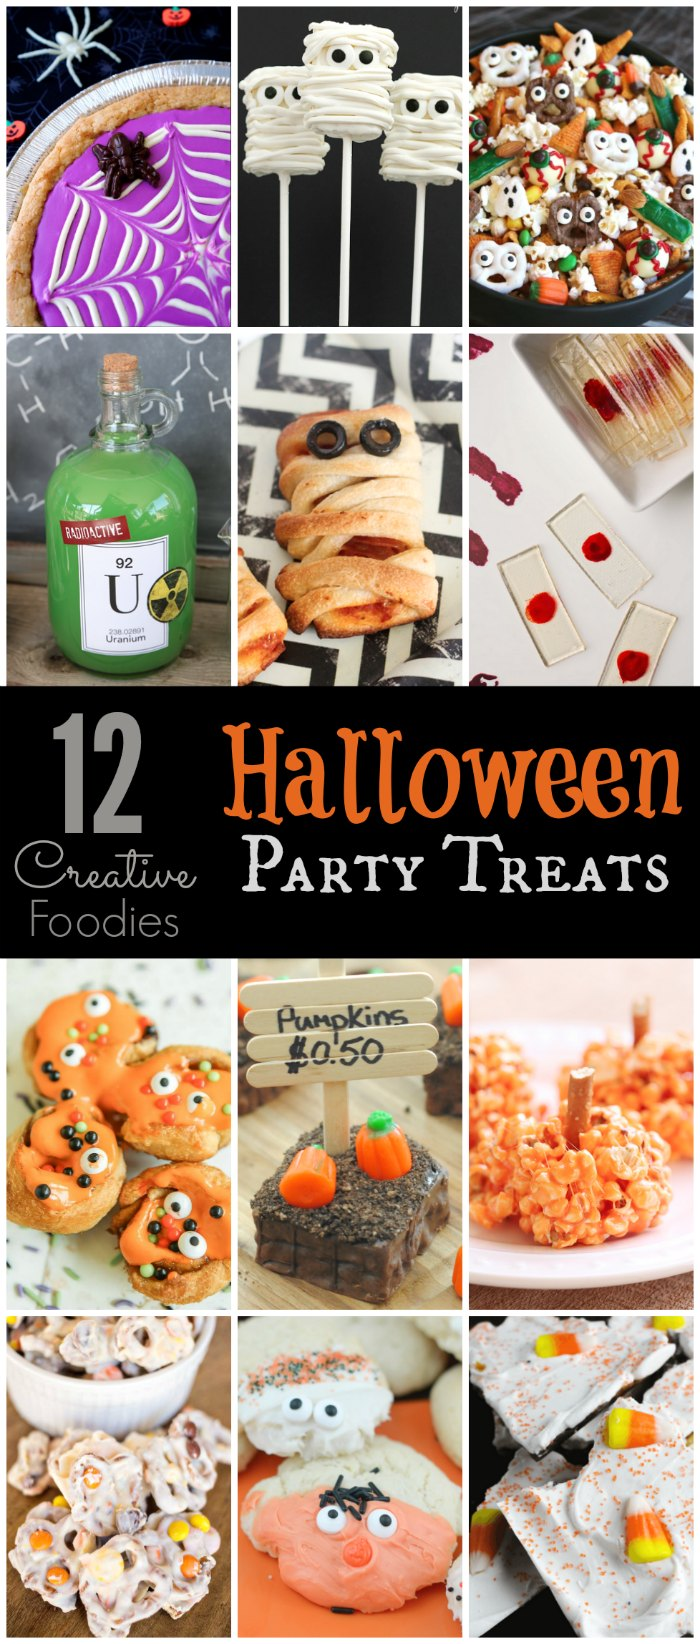 Try these 12 Halloween Party treats for your next spooky get-together!